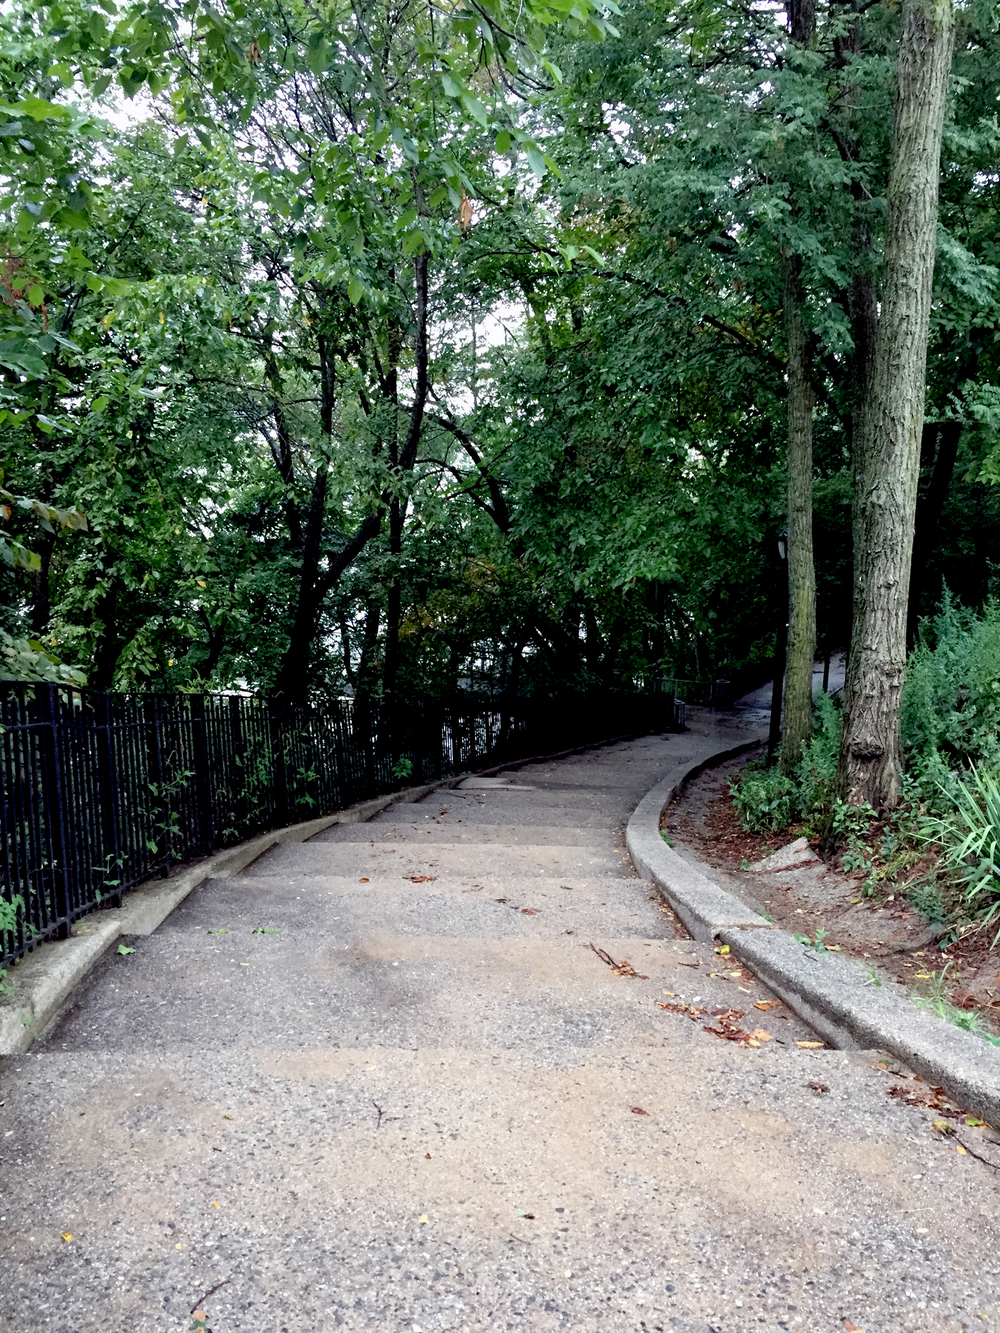 Looking down a Walking Path along Shore Road Park - September 10, 2015